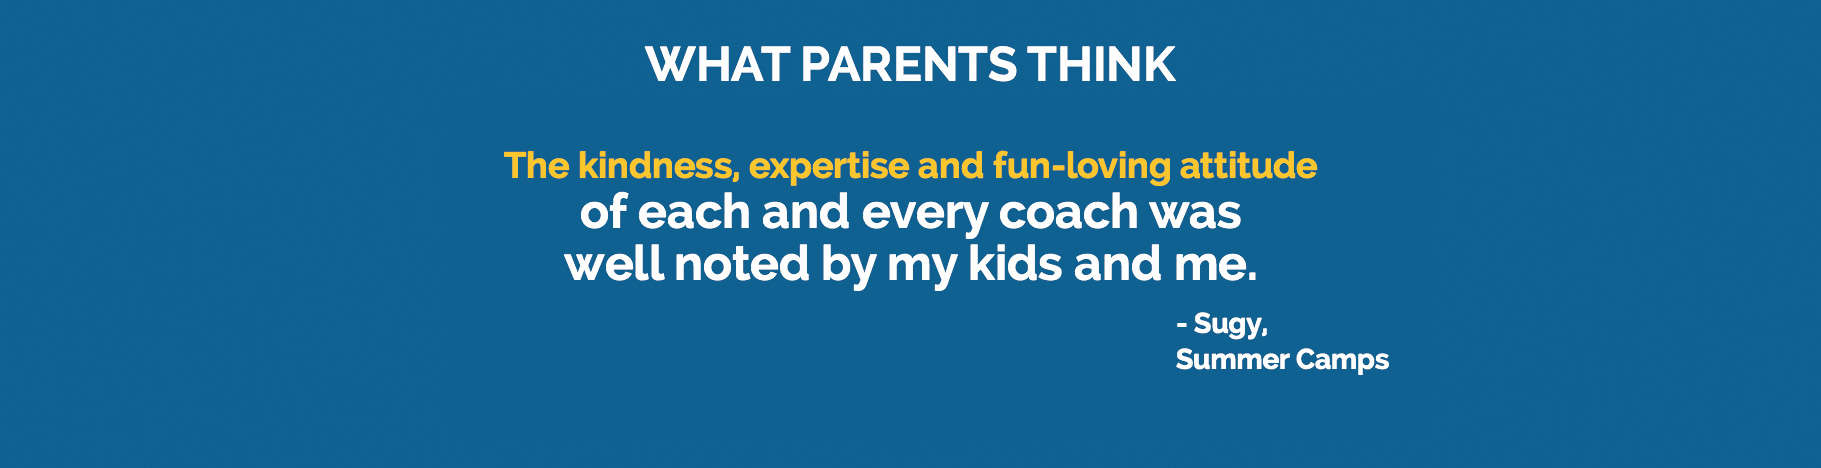 Testimonial: The kindness, expertise and fun-loving attitude of each and every coach was well noted by my kids and me.